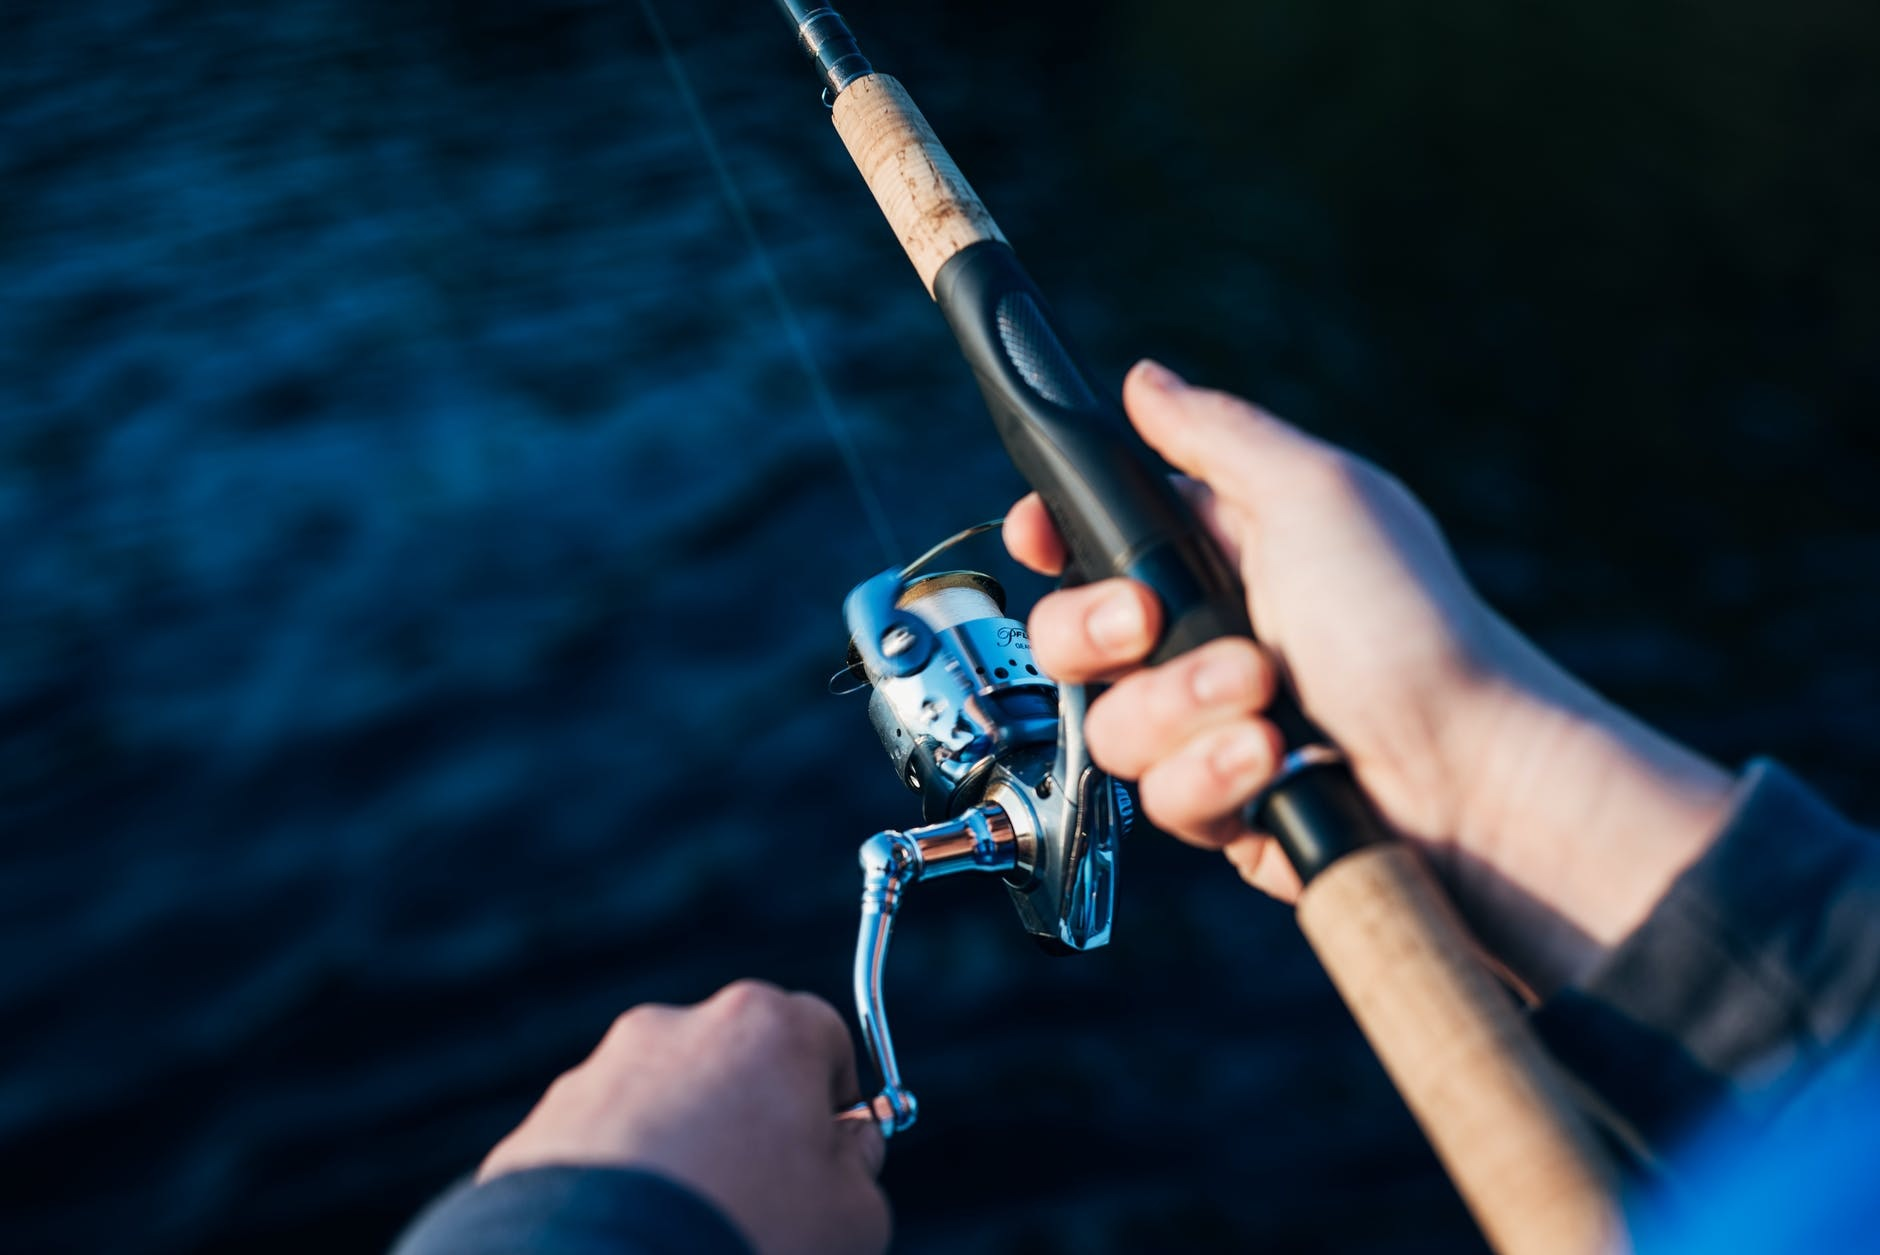 Hands holding a spinning rod and reel above blue water.